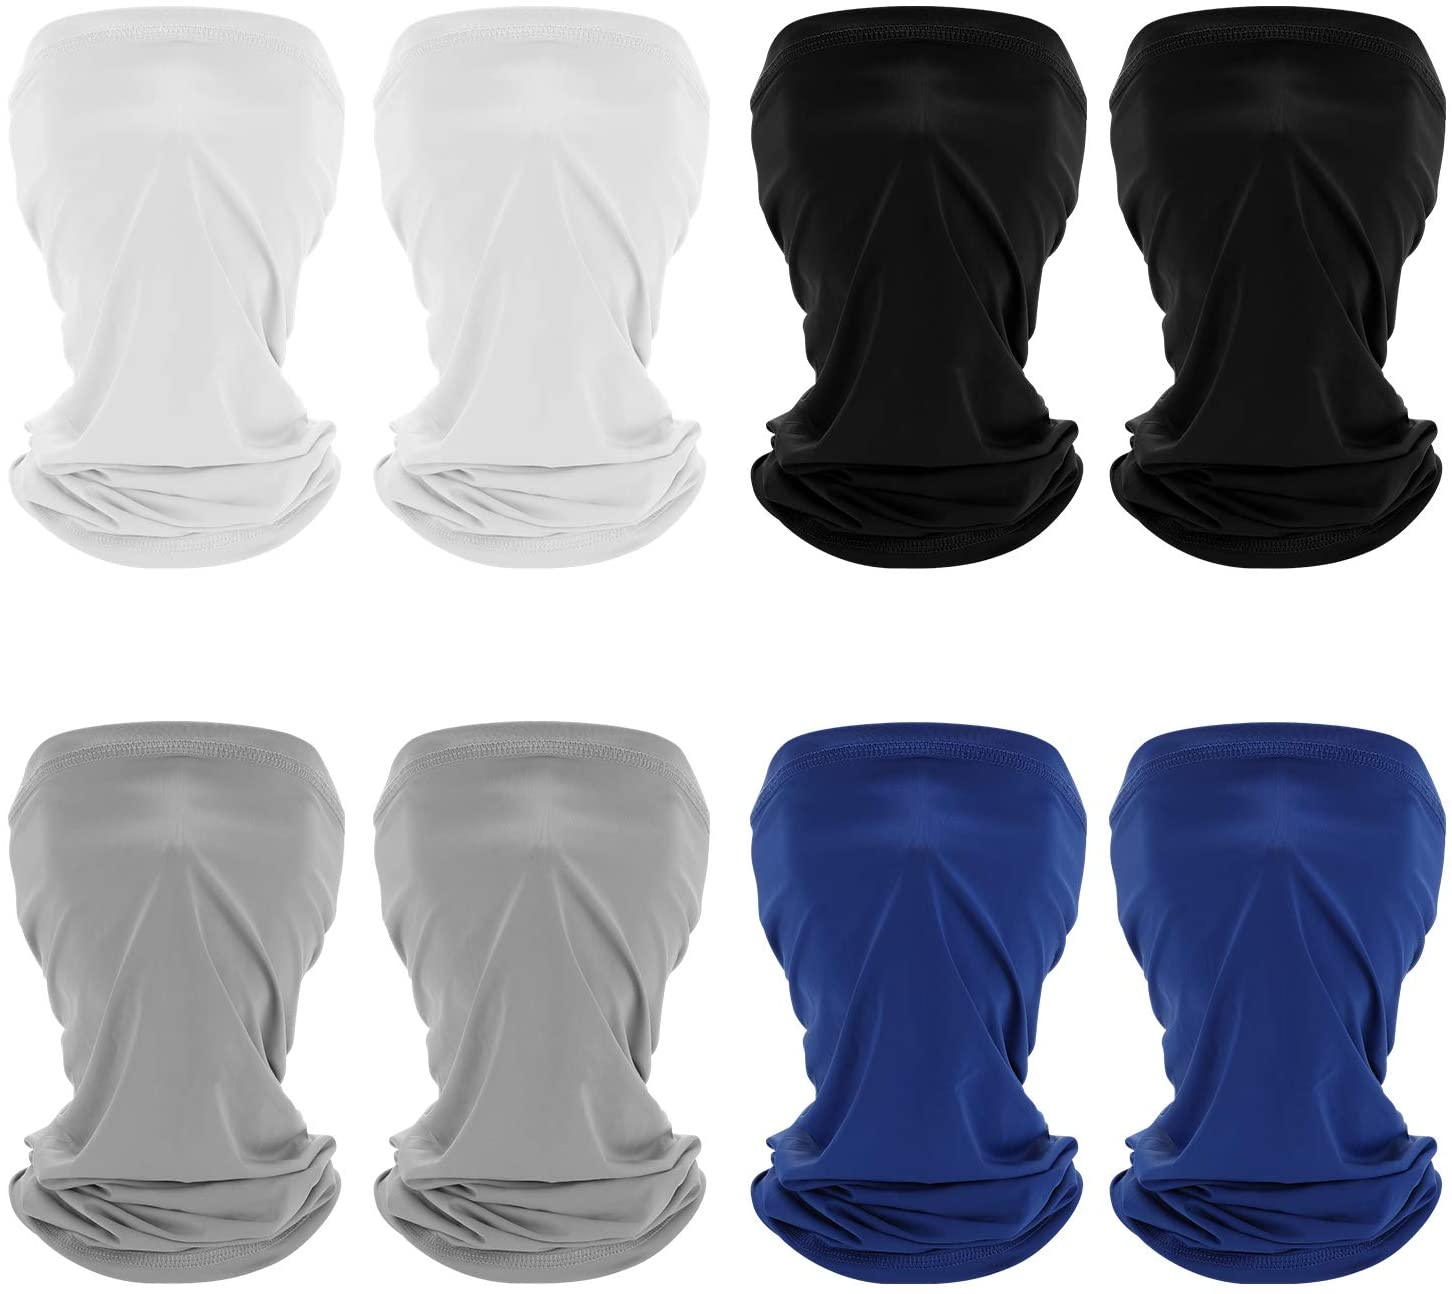 Sun UV Protection Face Bandana, Protection Neck Gaiter Mask, Magic Scarf Neck Gaiter, Balaclava Windproof Scarf Sunscreen Breathable for Men & Women